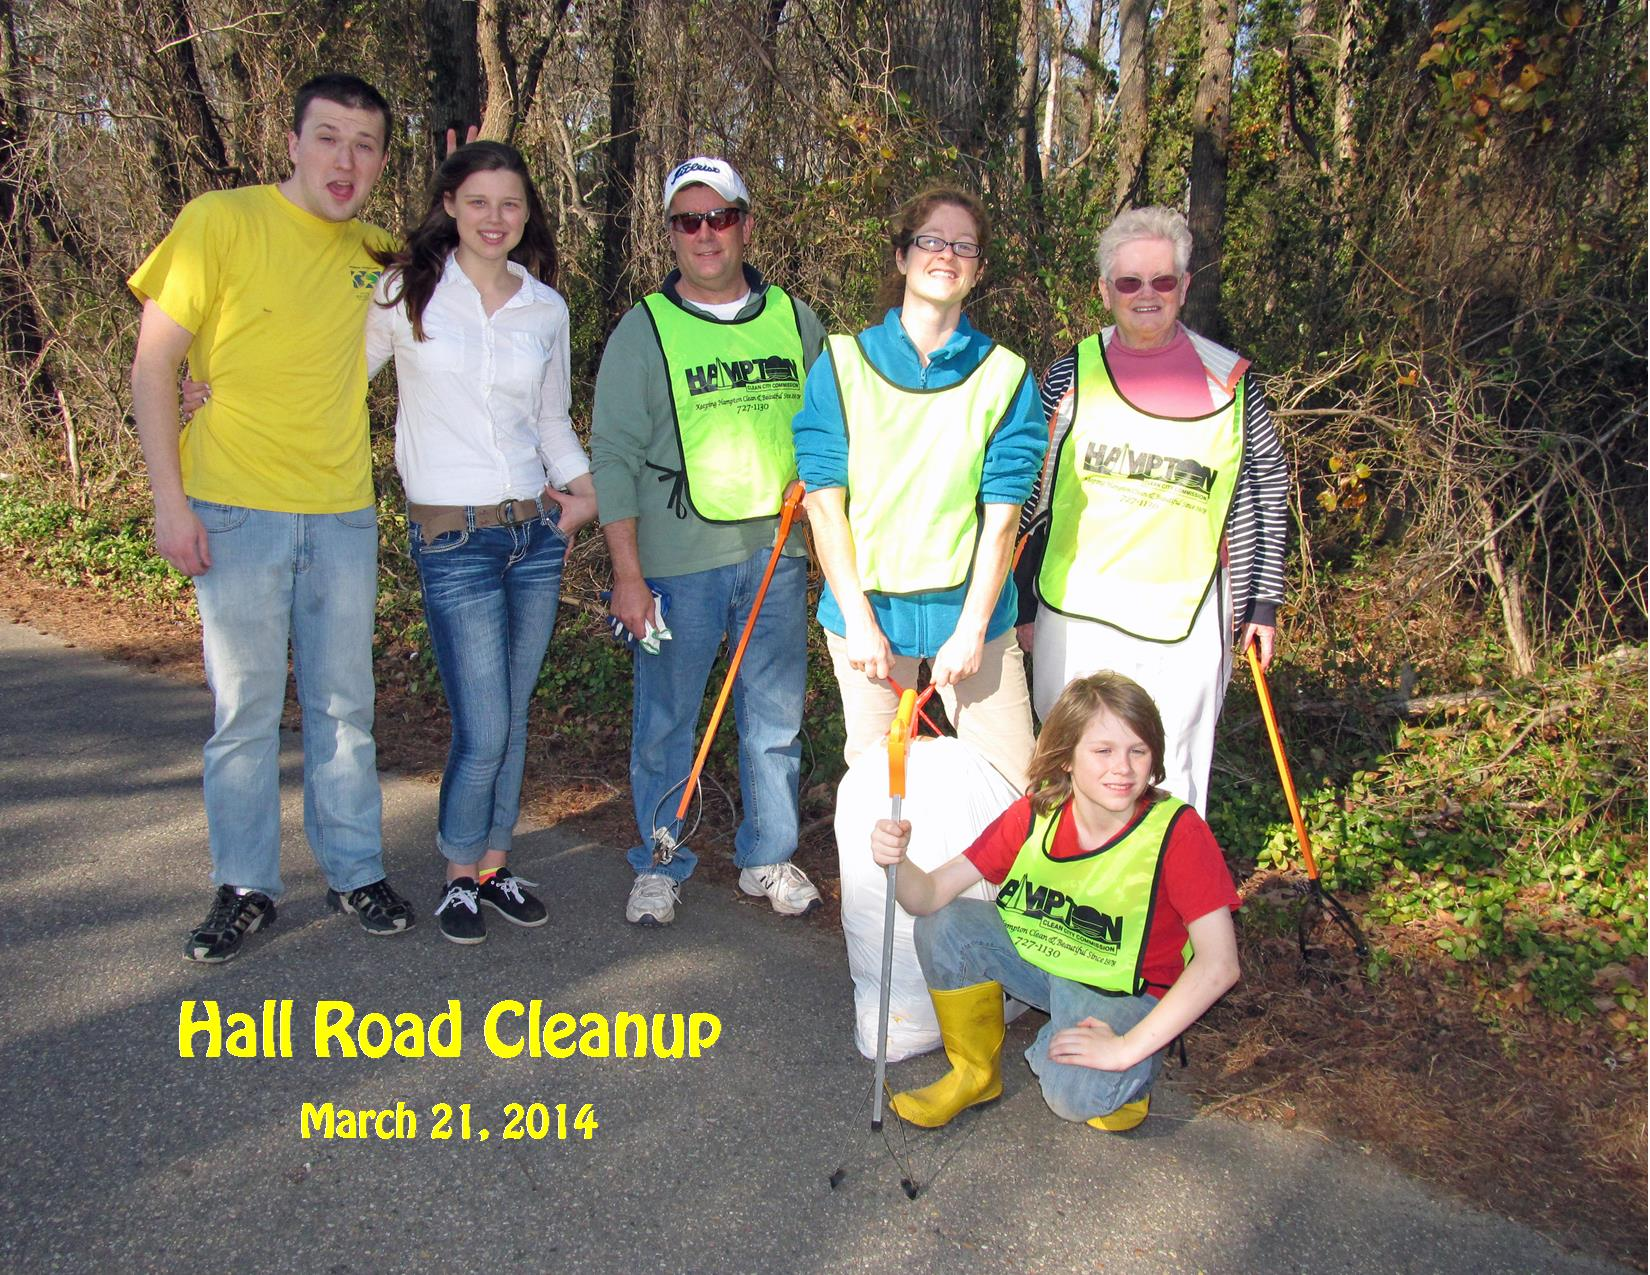 3-21-14 Hall Road Cleanup Group